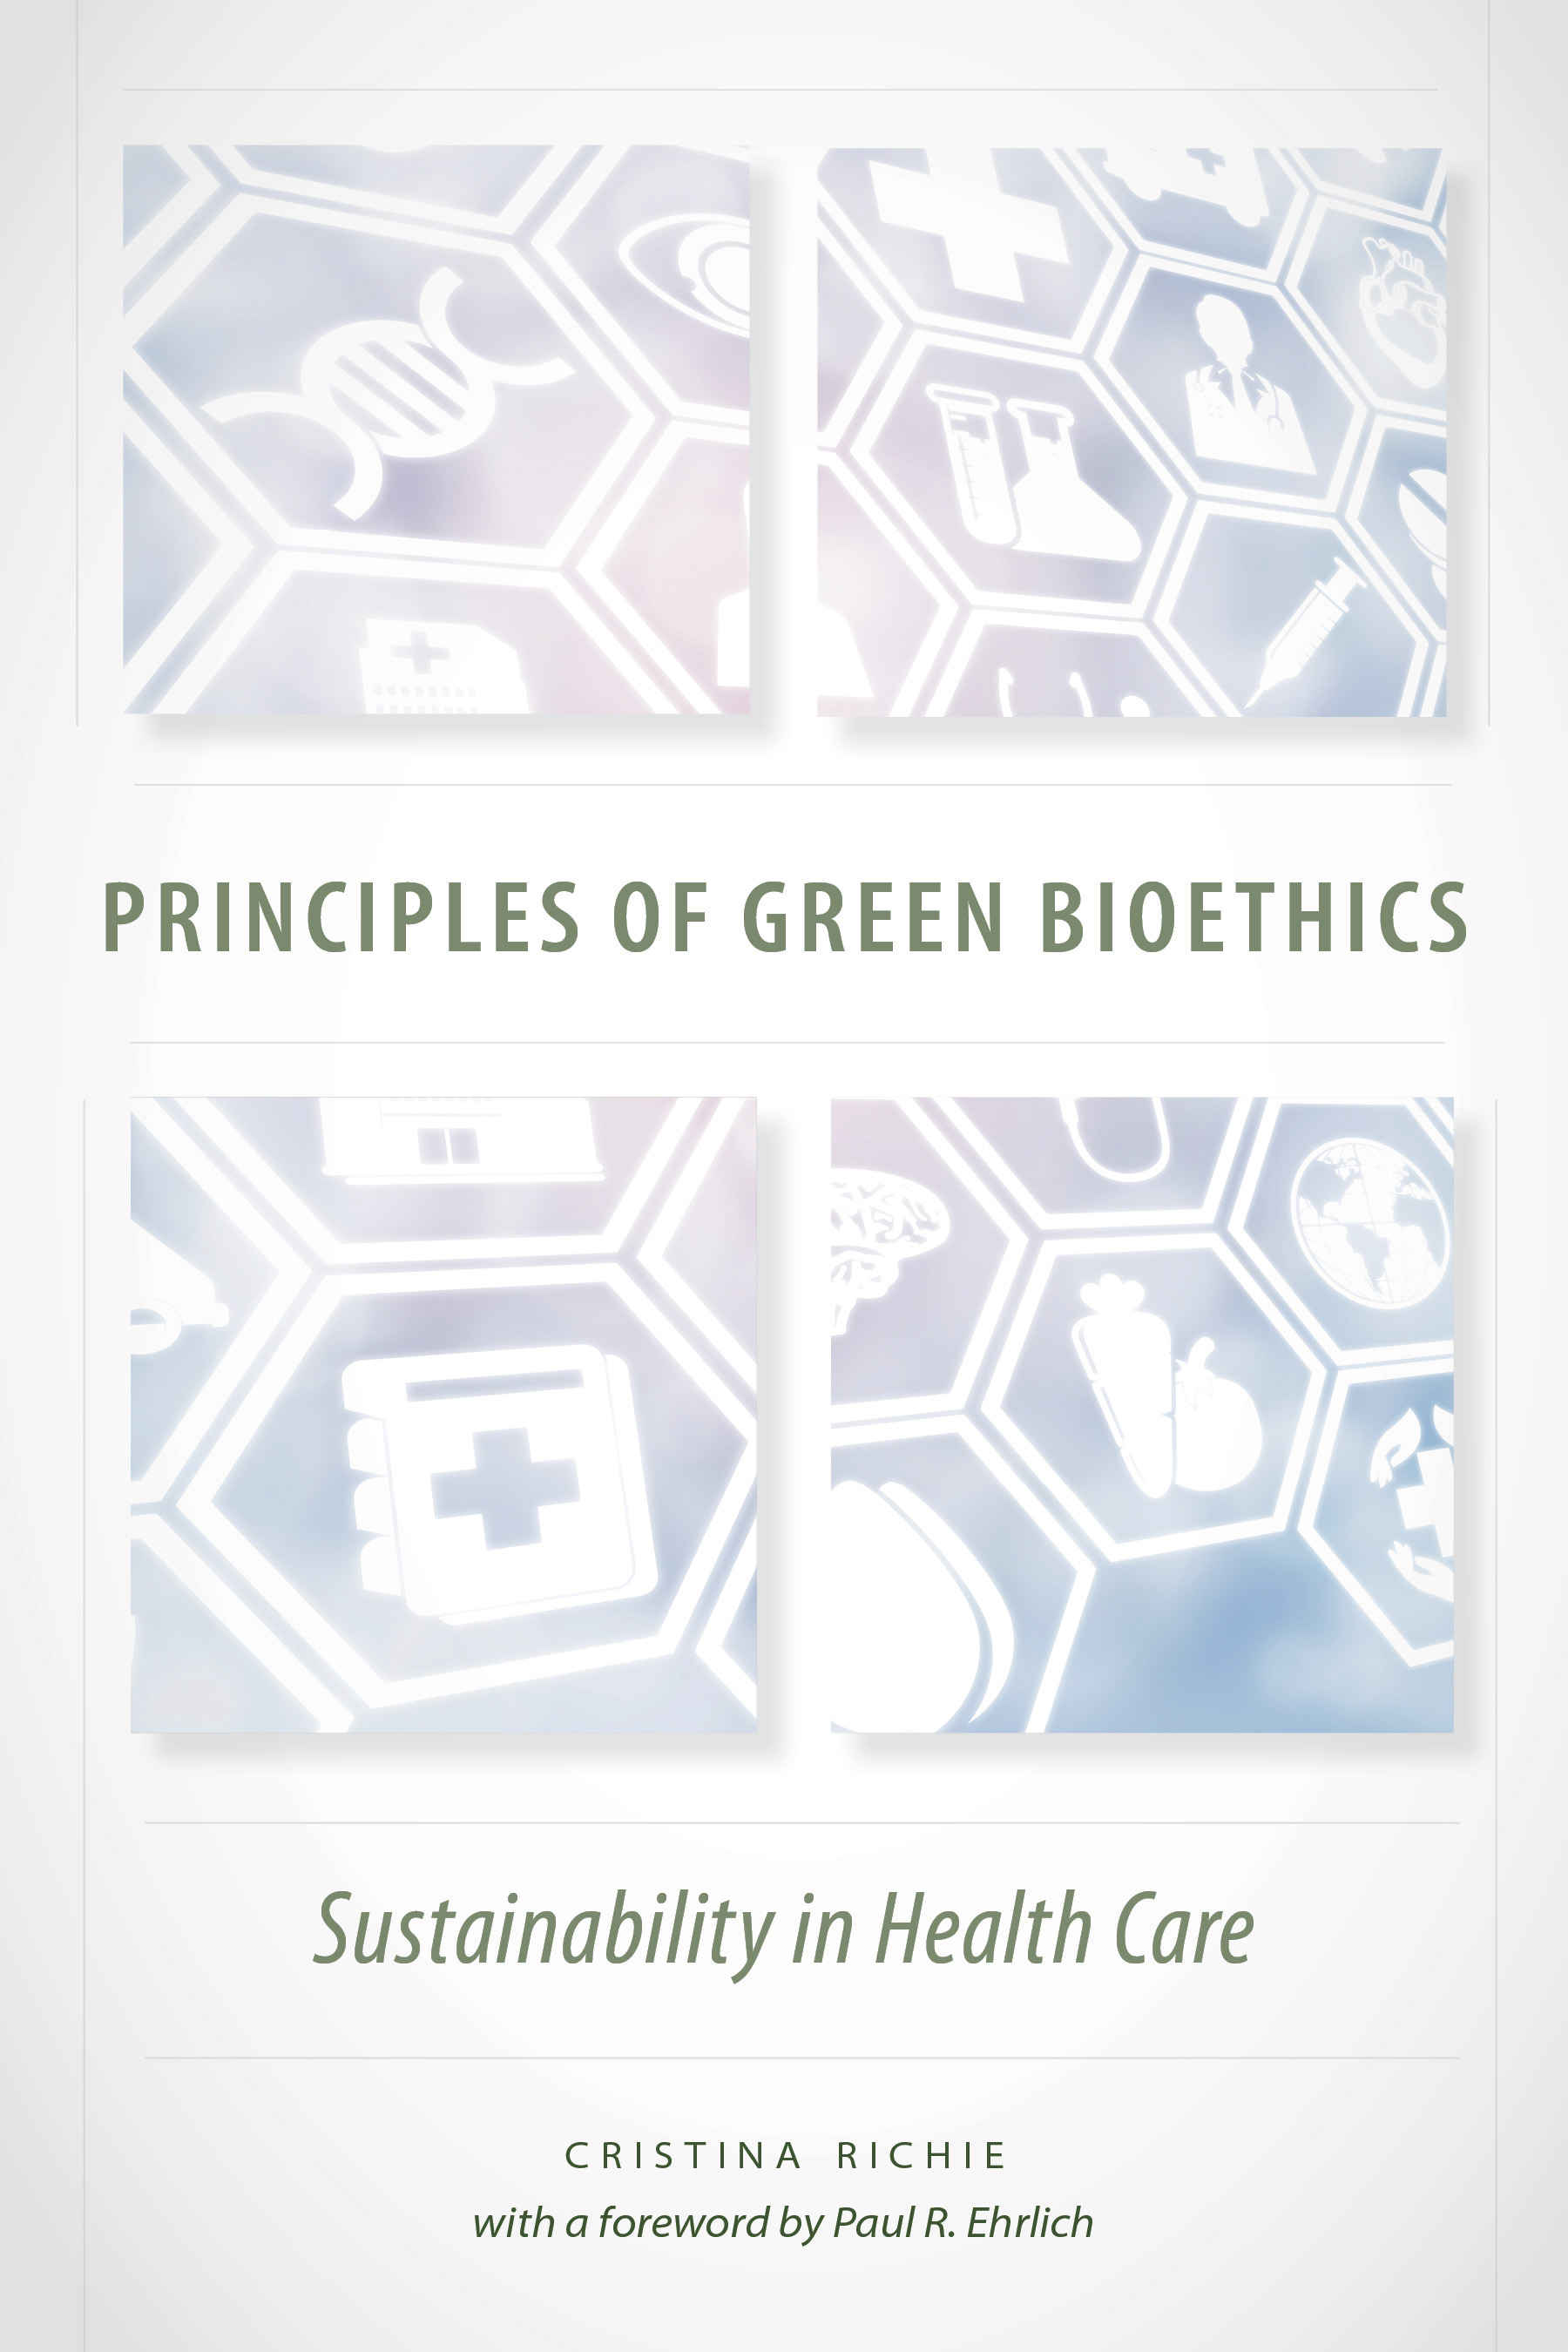 Principles of Green Bioethics cover